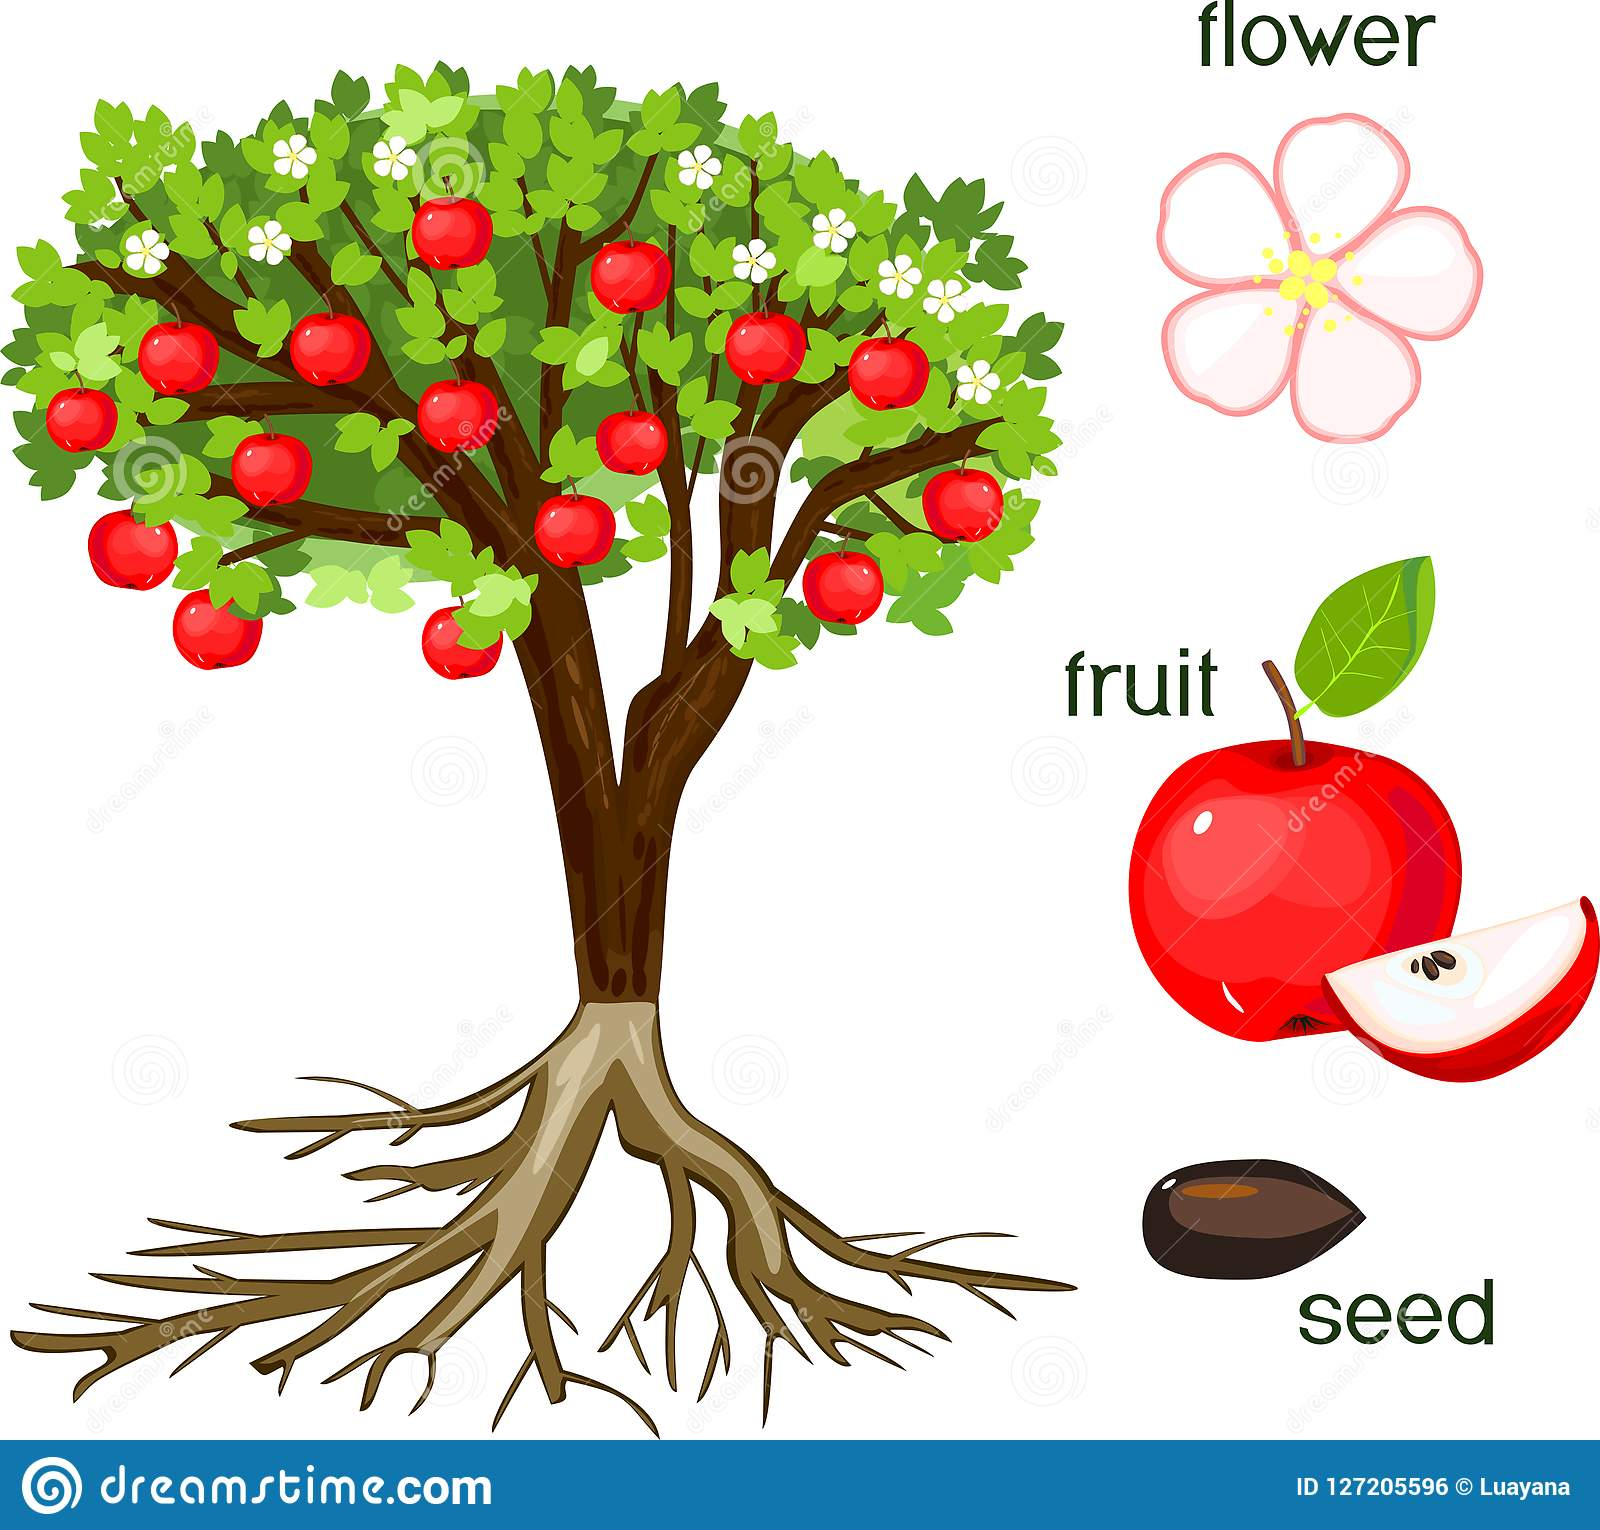 Parts Of Plant Morphology Of Apple Tree With Fruits